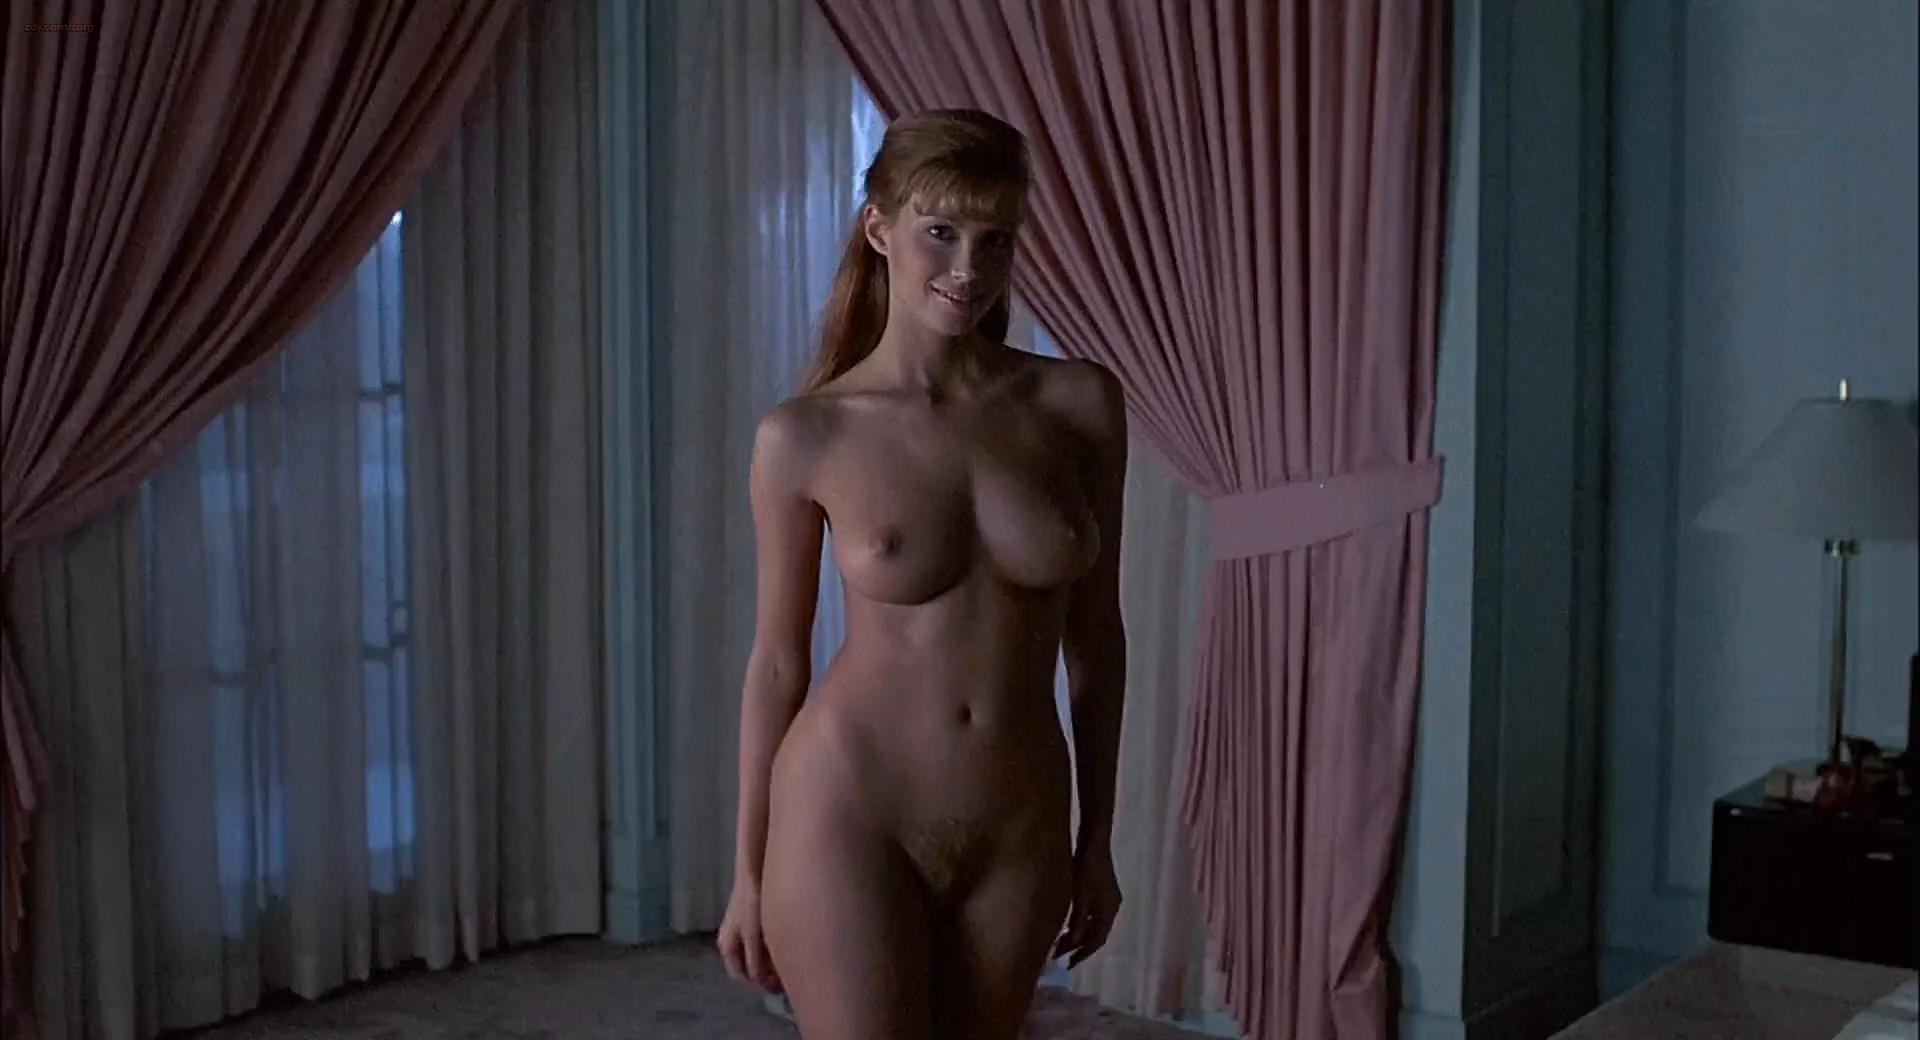 Remarkable, Tawny kitaen young nude thanks